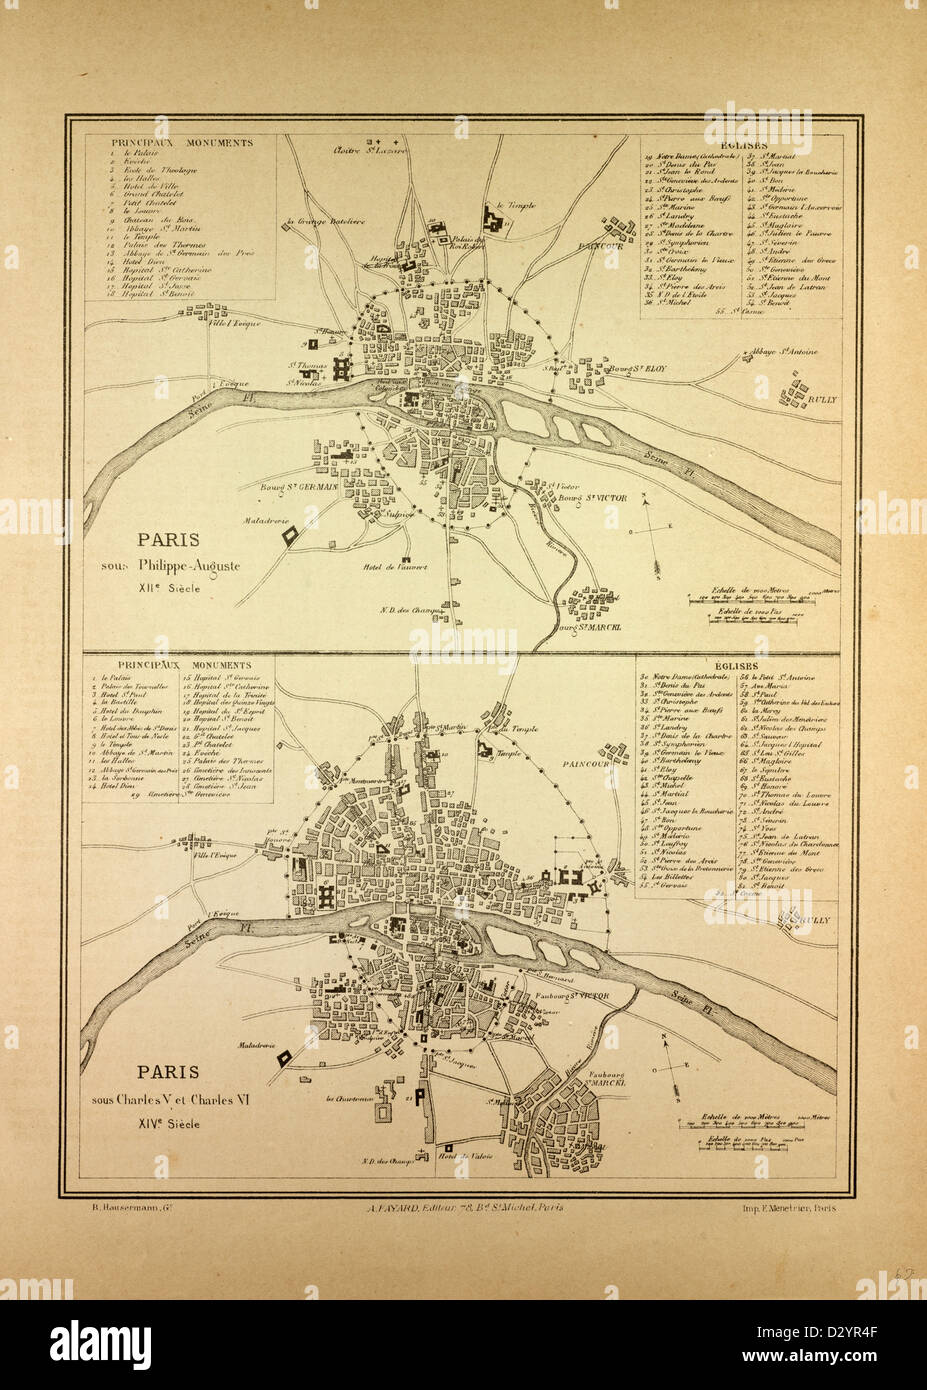 MAP OF PARIS IN THE 12TH CENTURY AND IN THE 14TH CENTURY FRANCE - Stock Image